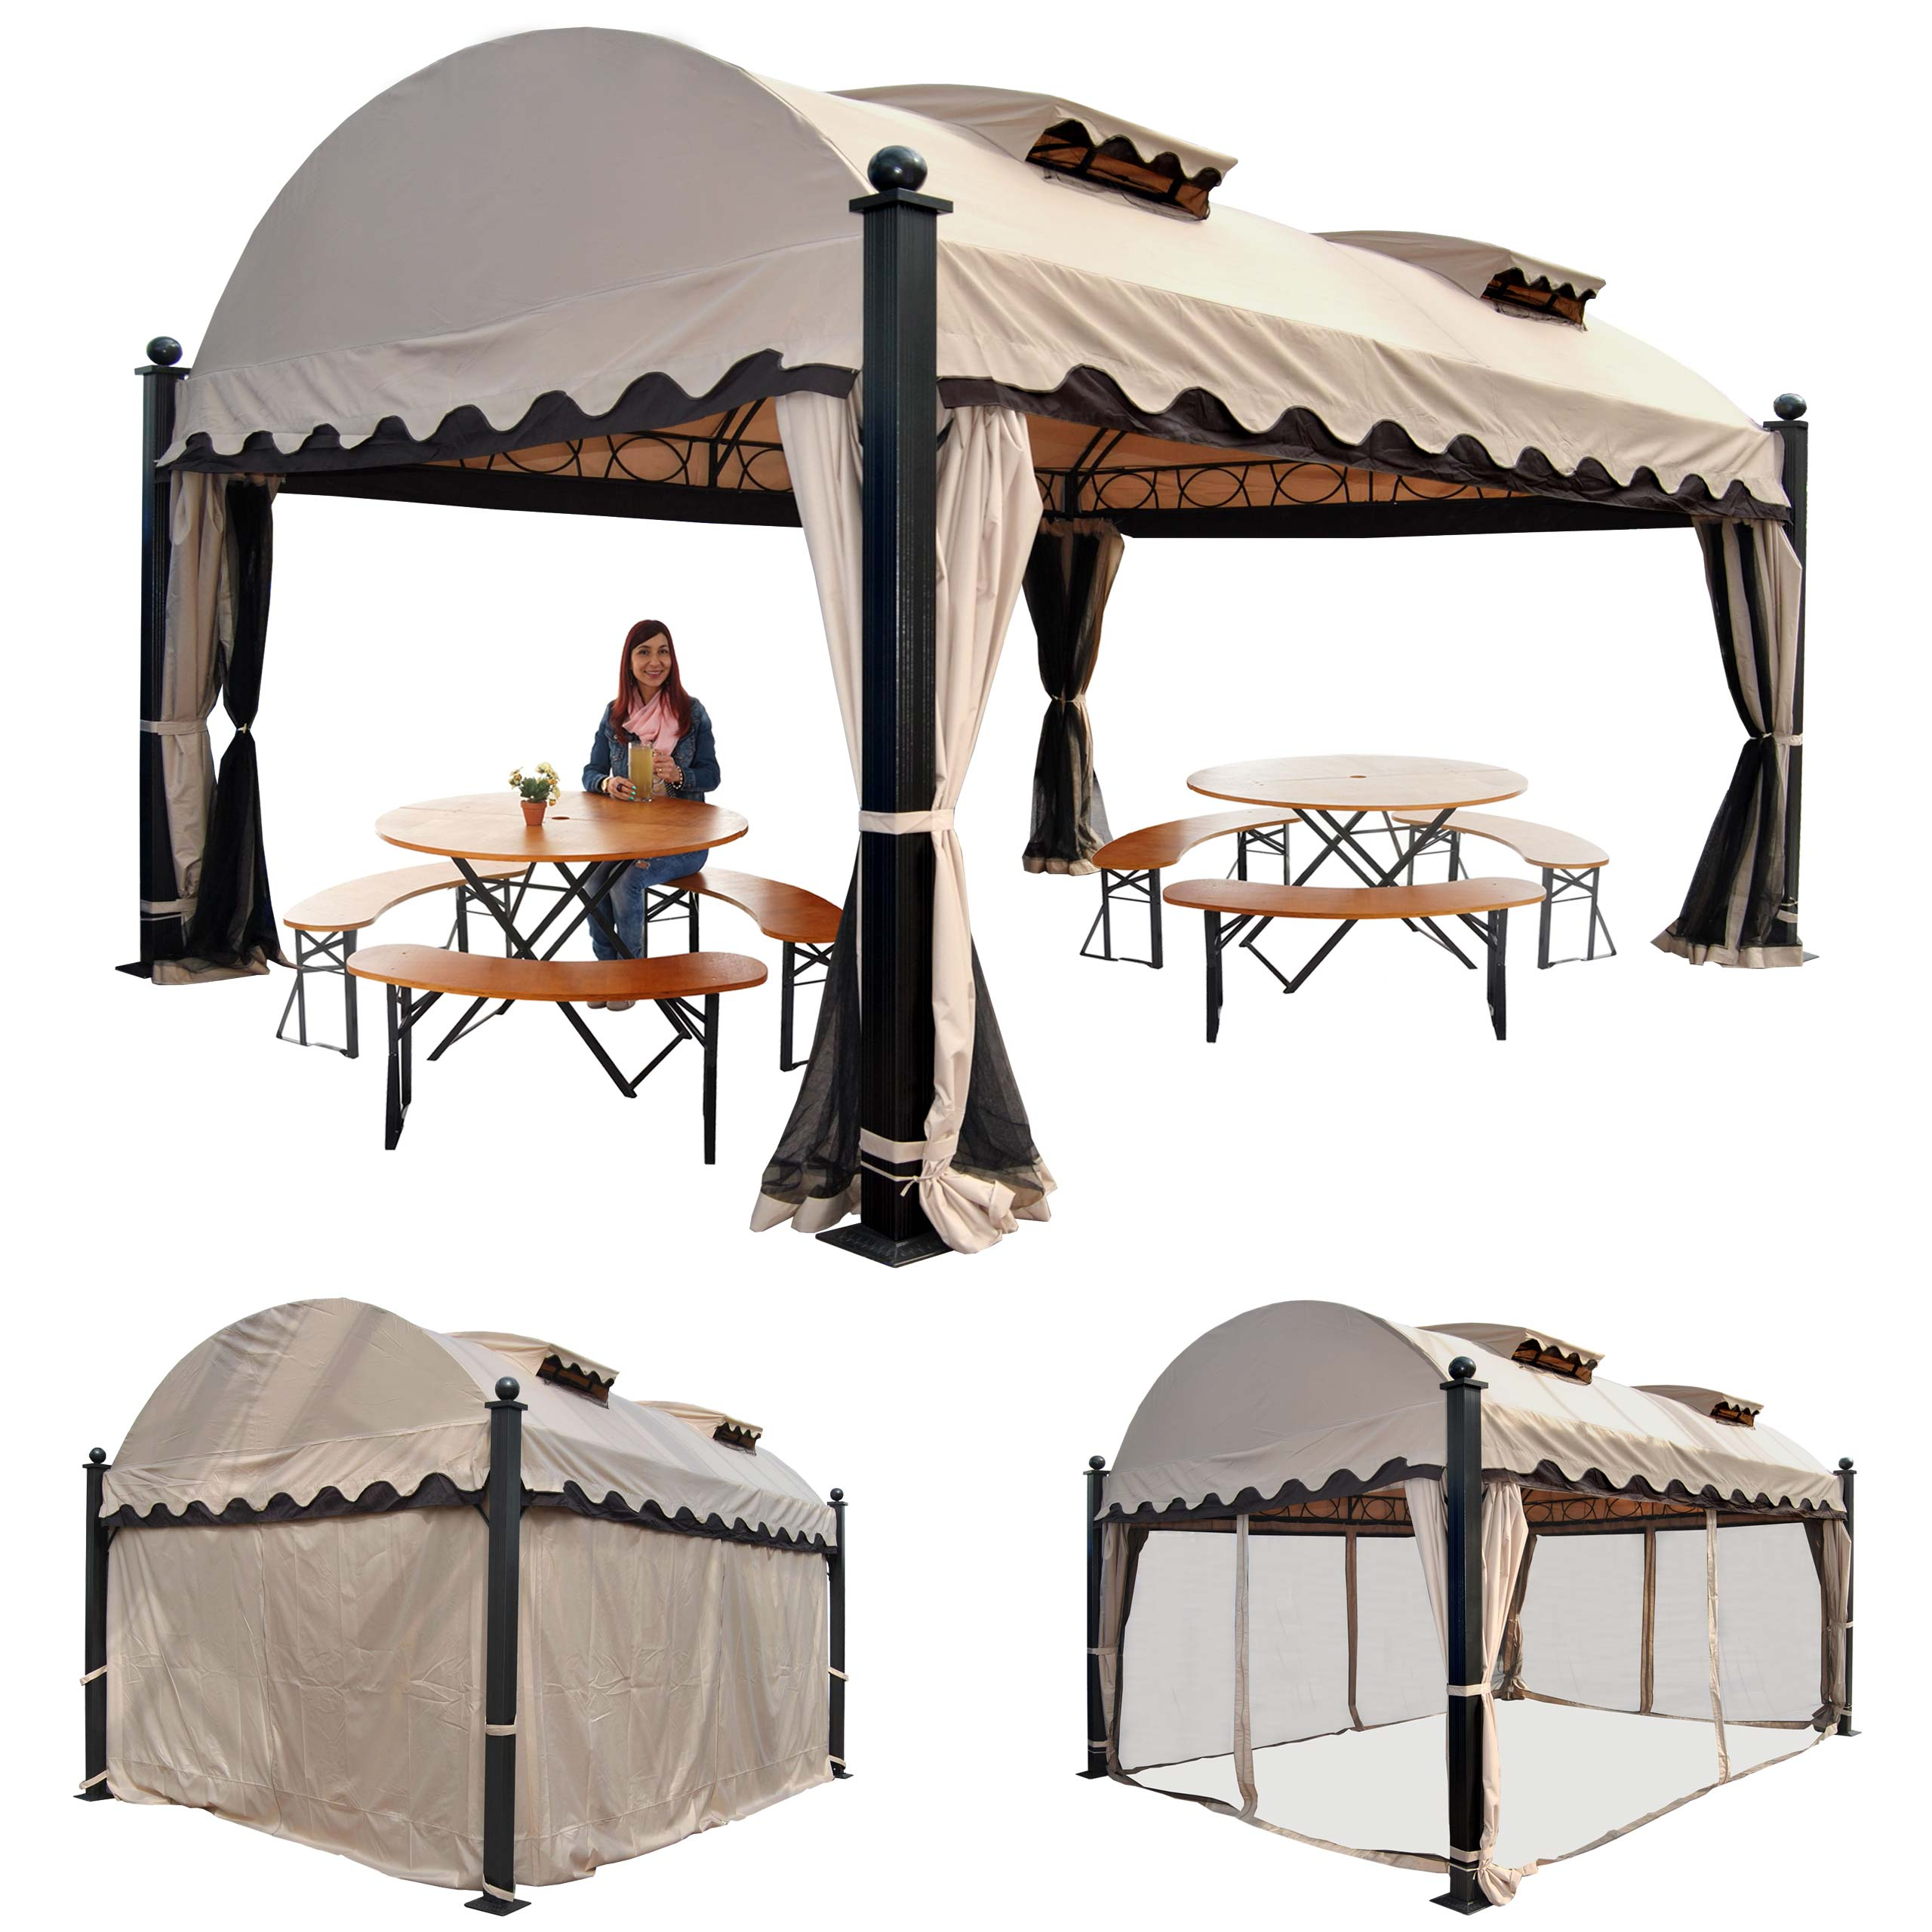 pergola baena garten pavillon terrassen berdachung. Black Bedroom Furniture Sets. Home Design Ideas